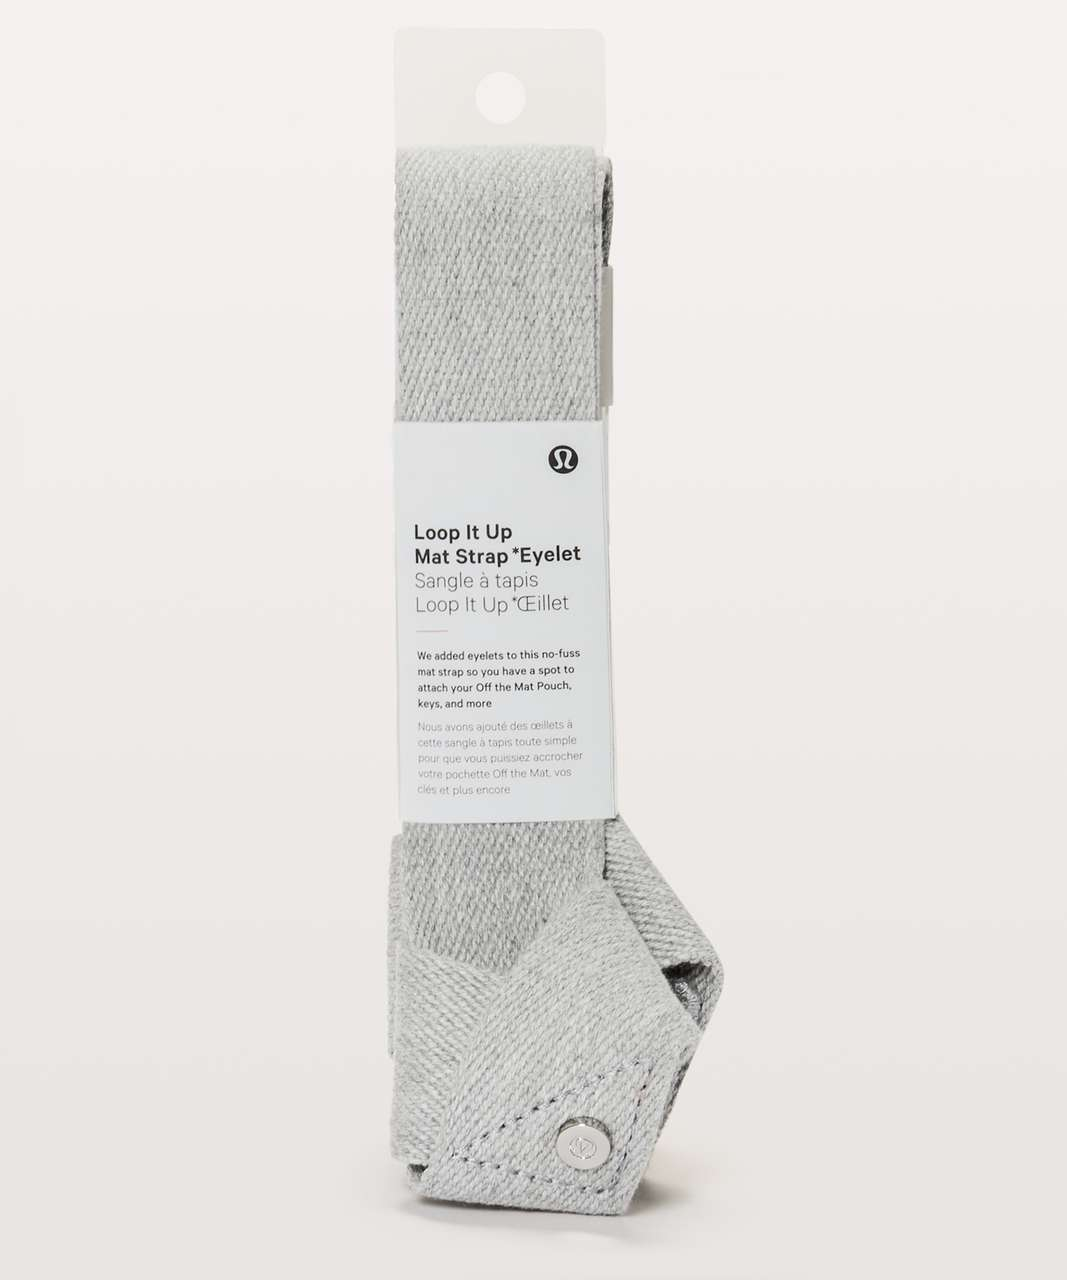 Lululemon Loop It Up Mat Strap *Eyelet - Heathered Core Light Grey